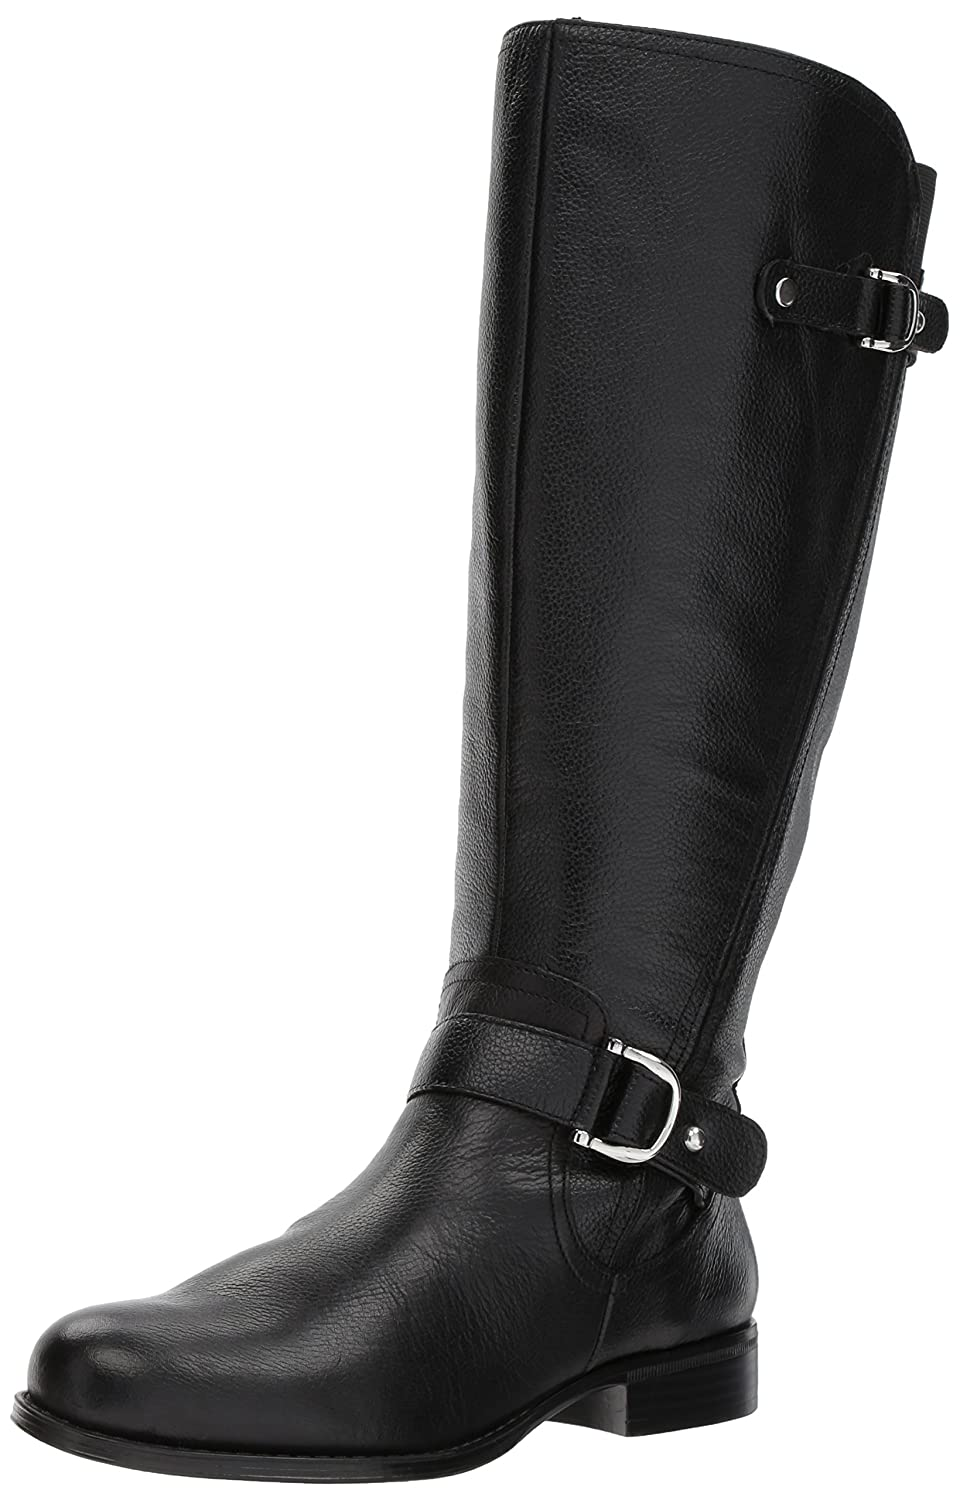 Naturalizer Women's Jenelle Wide Calf Riding Boot B06XC6TNMR 12 M US|Black